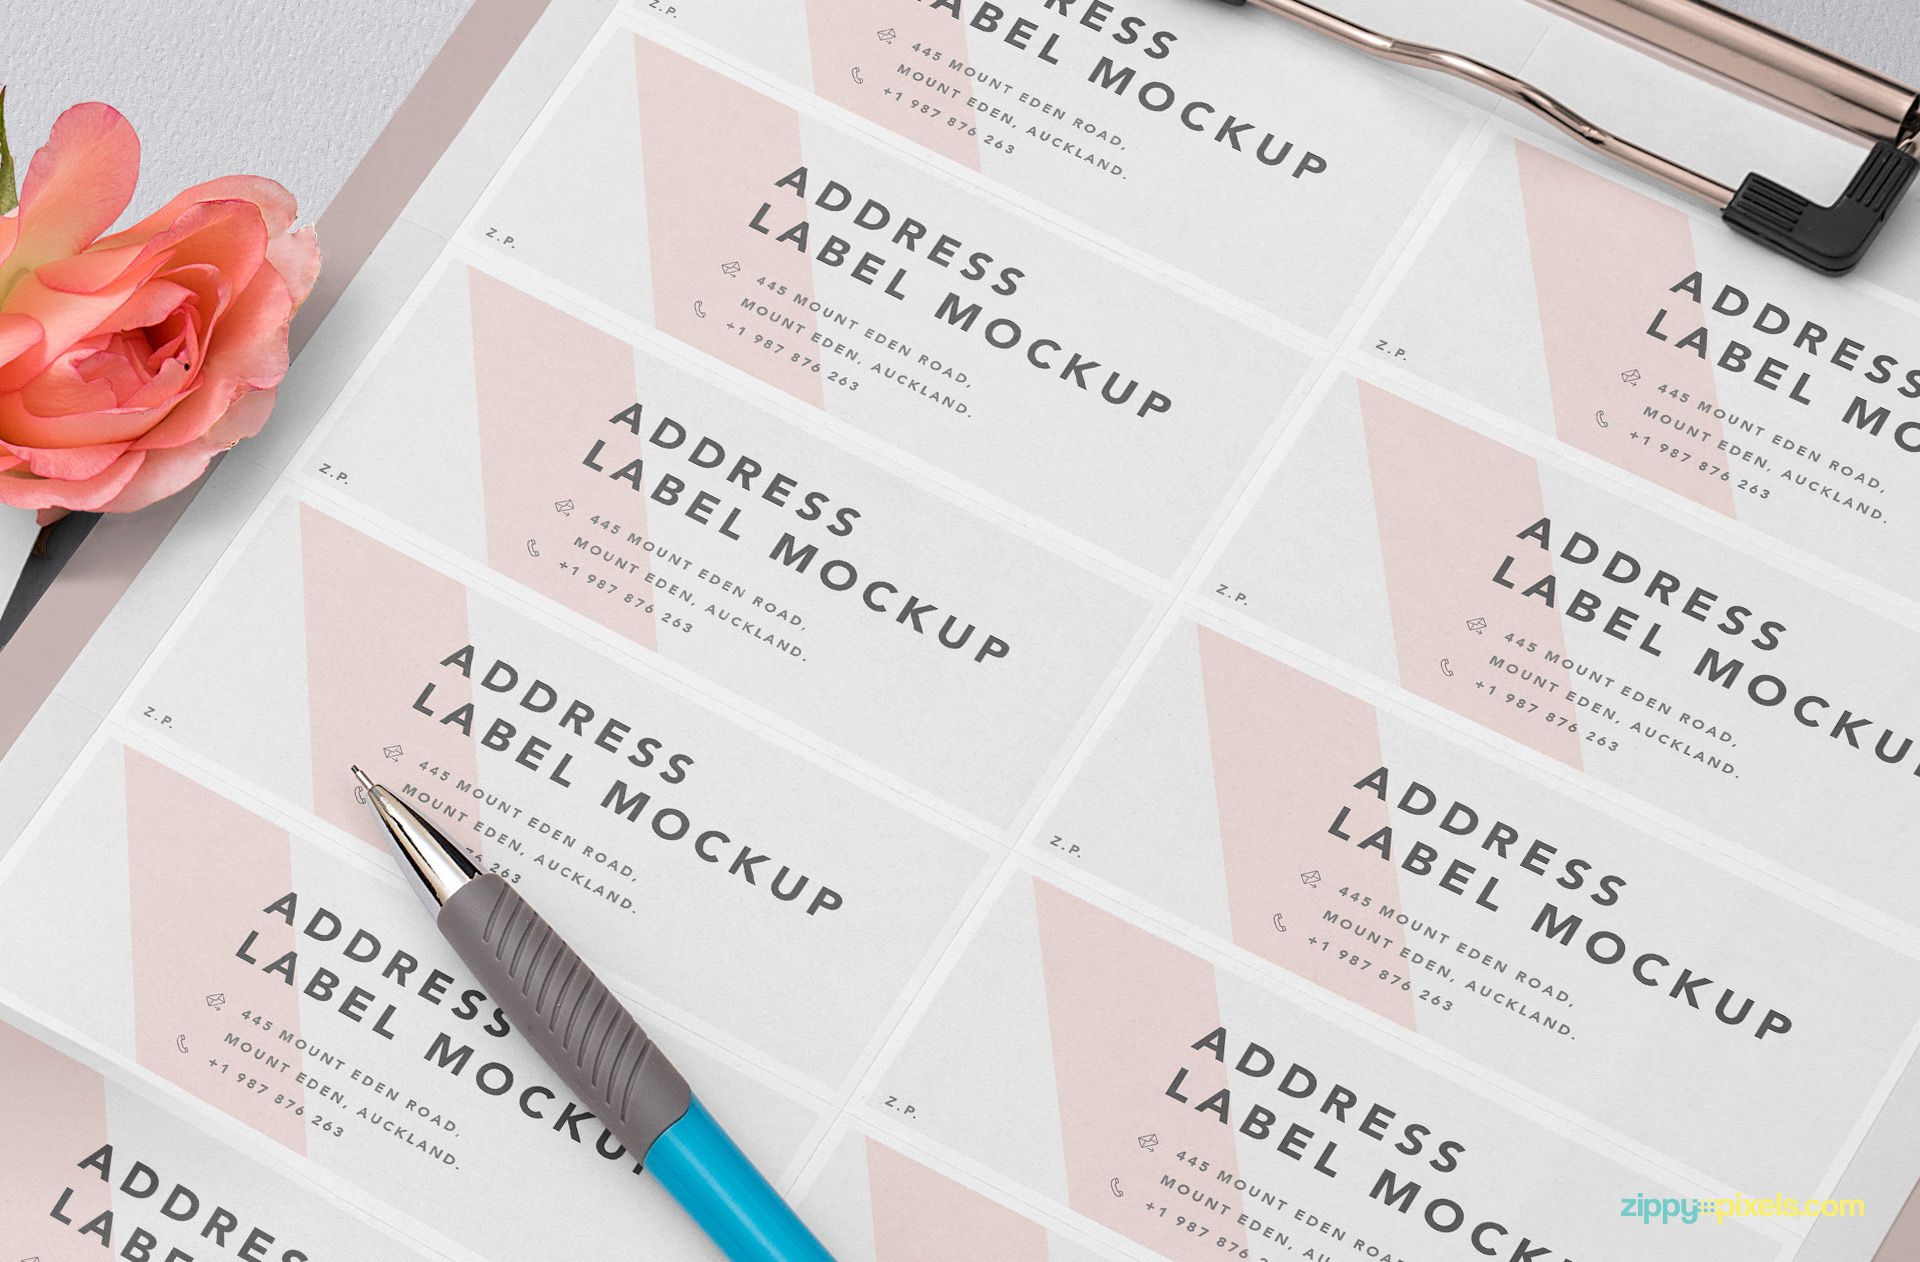 Free address label sheets with multiple labels.